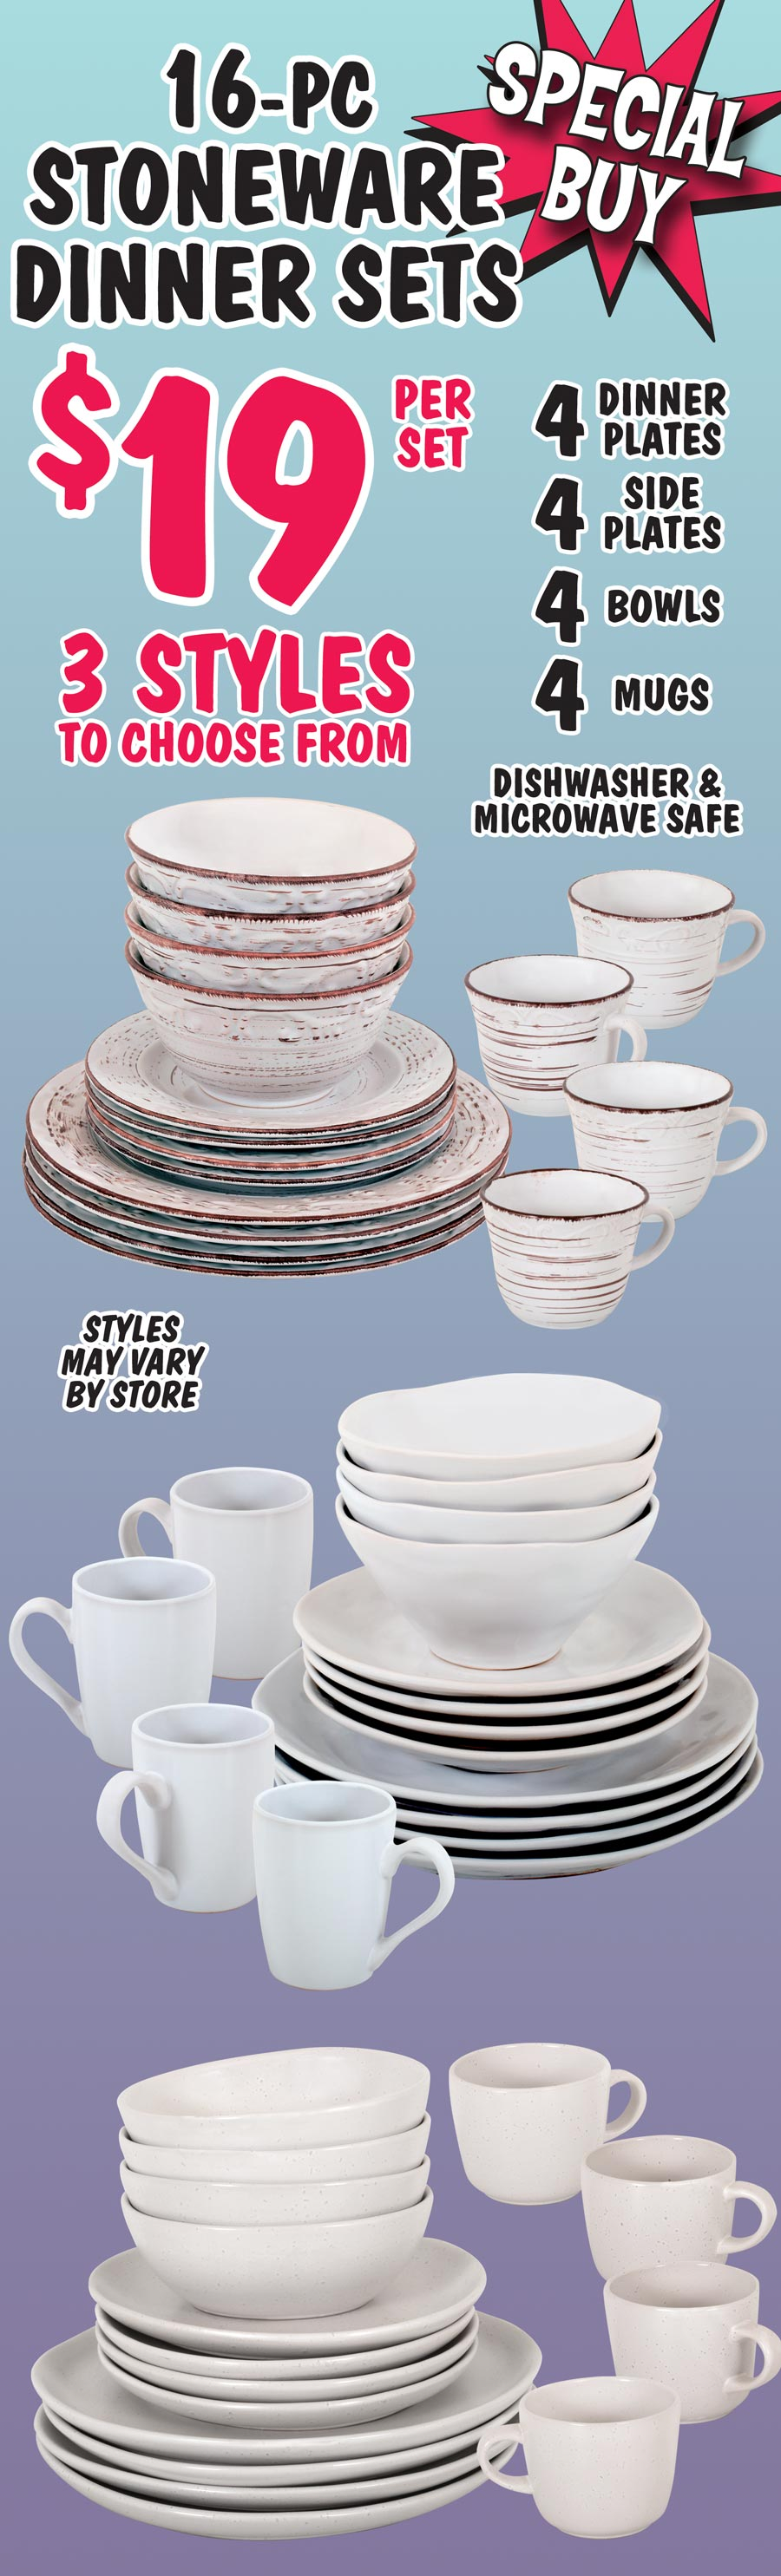 16 piece Stoneware Dinner Sets - Special Buy $19 - 3 Styles